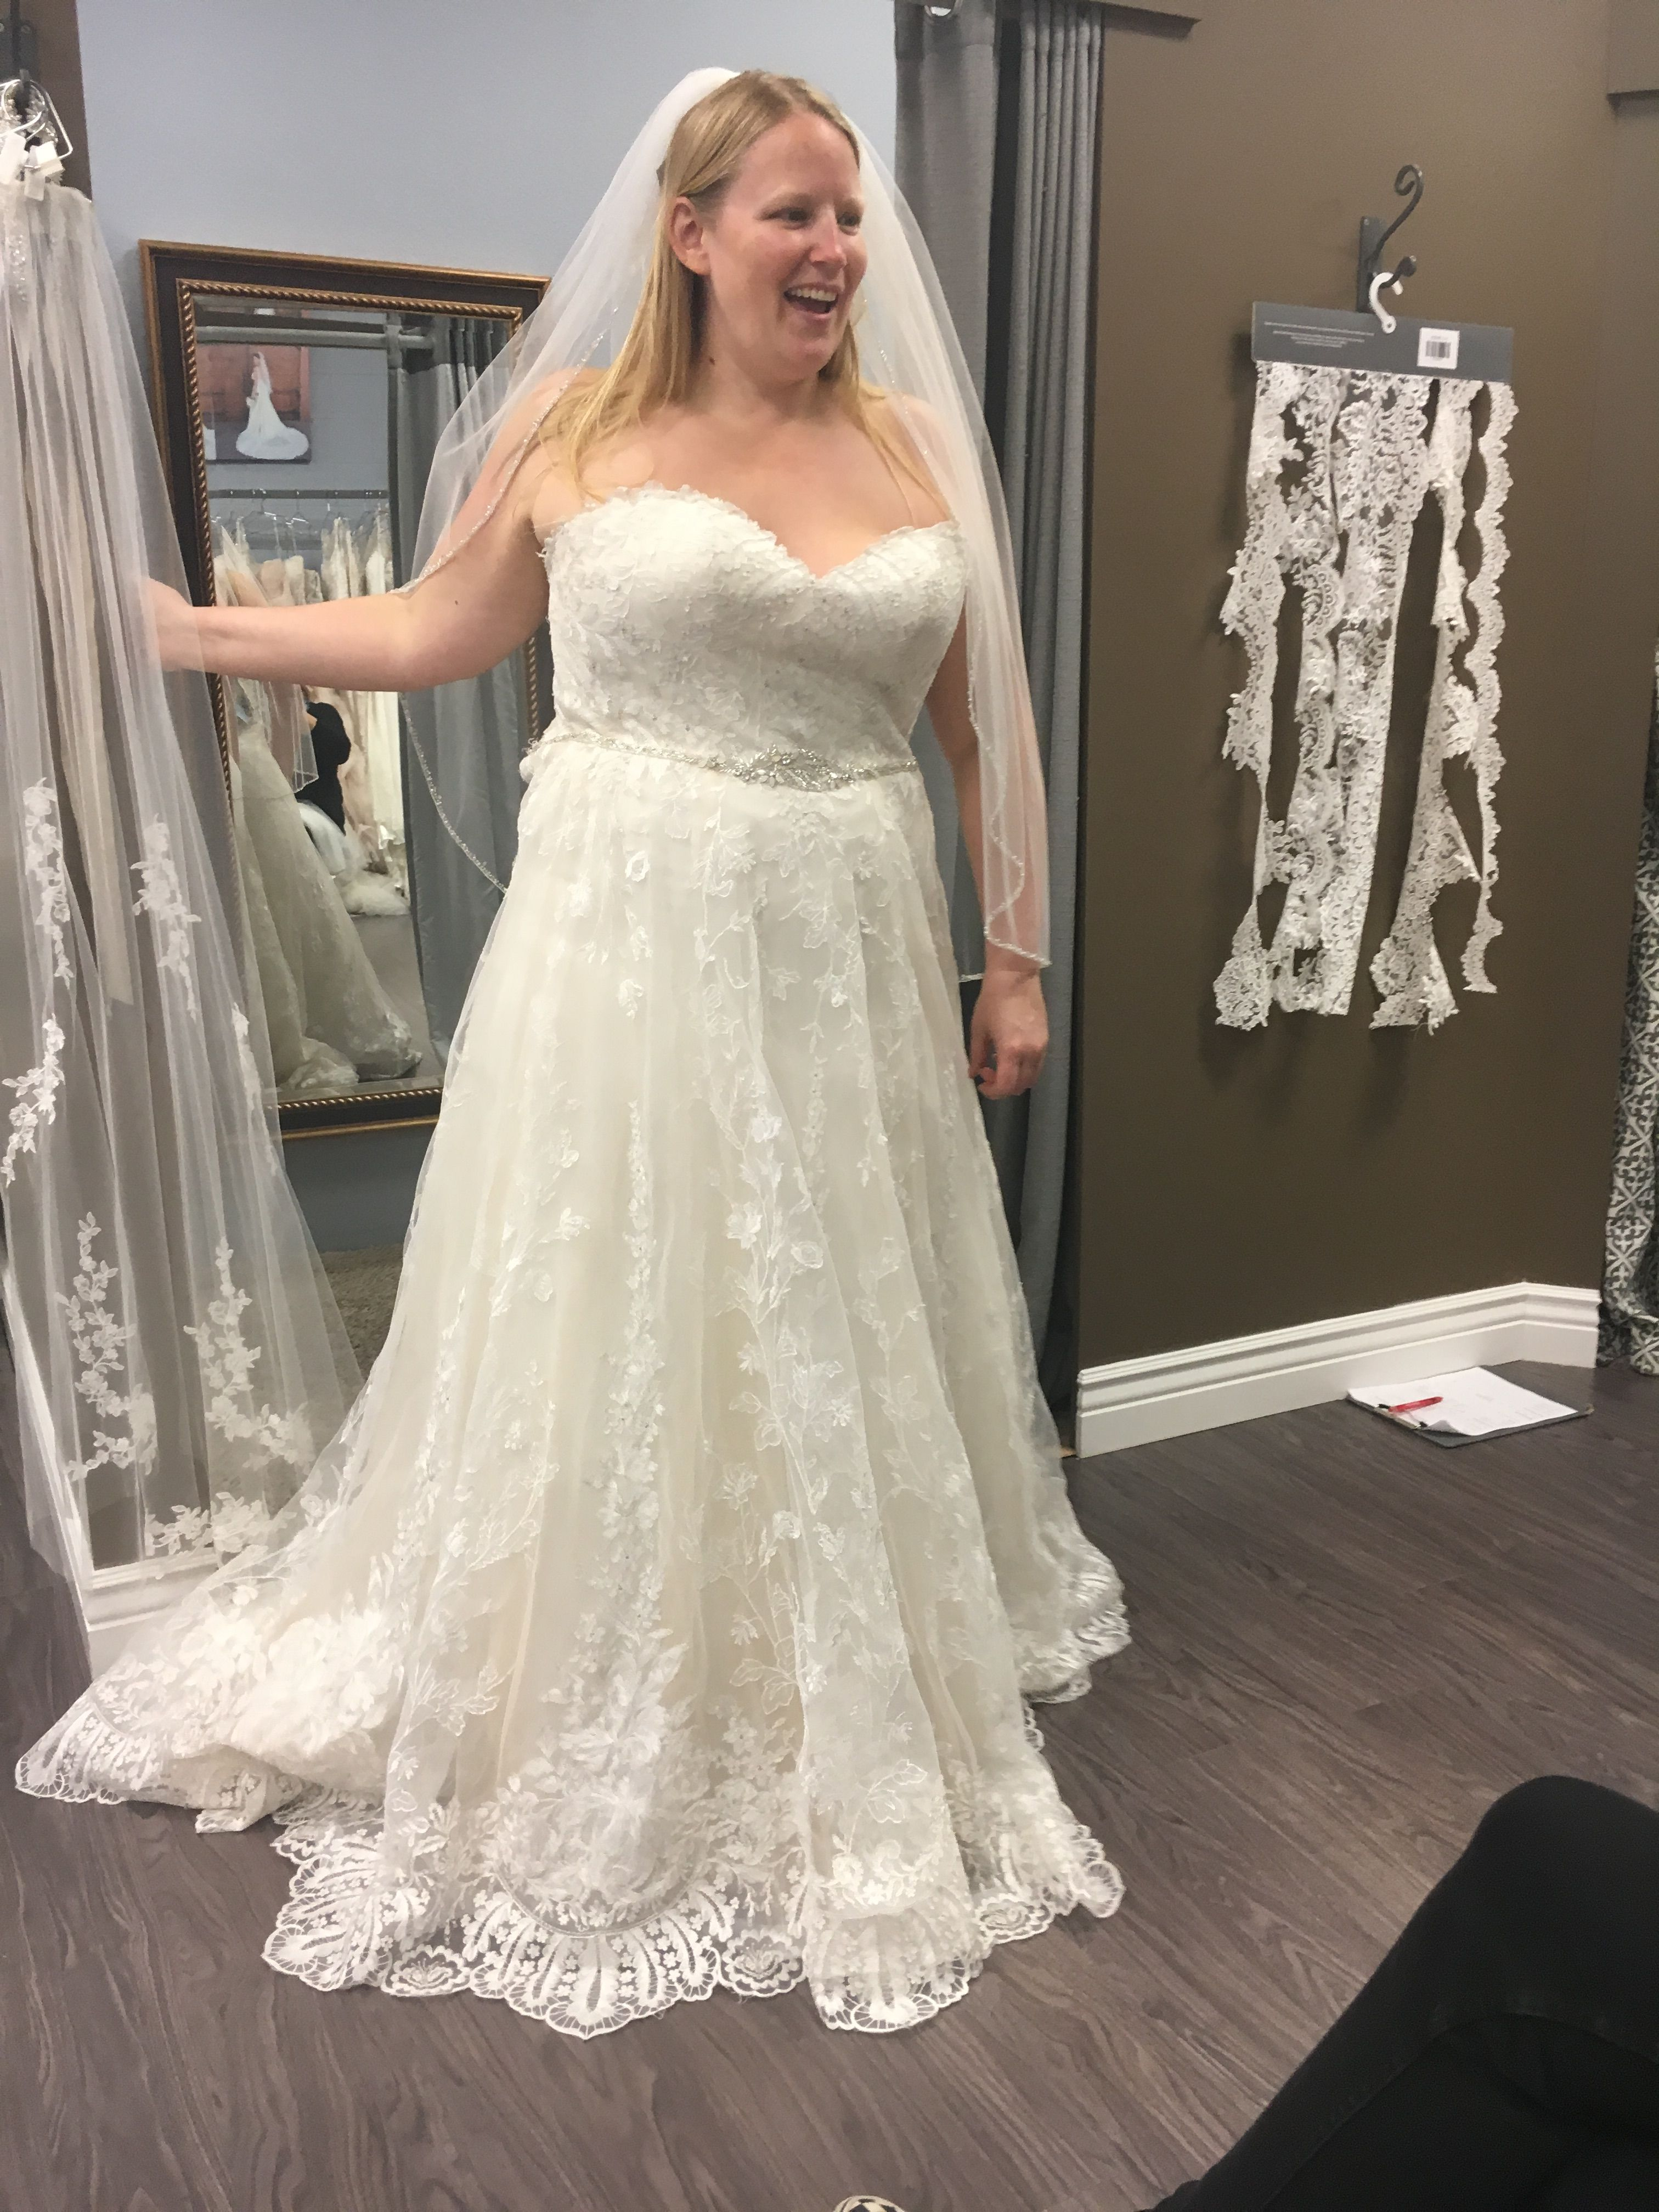 Trying on the Maggie Sottero Luna dress for the first time